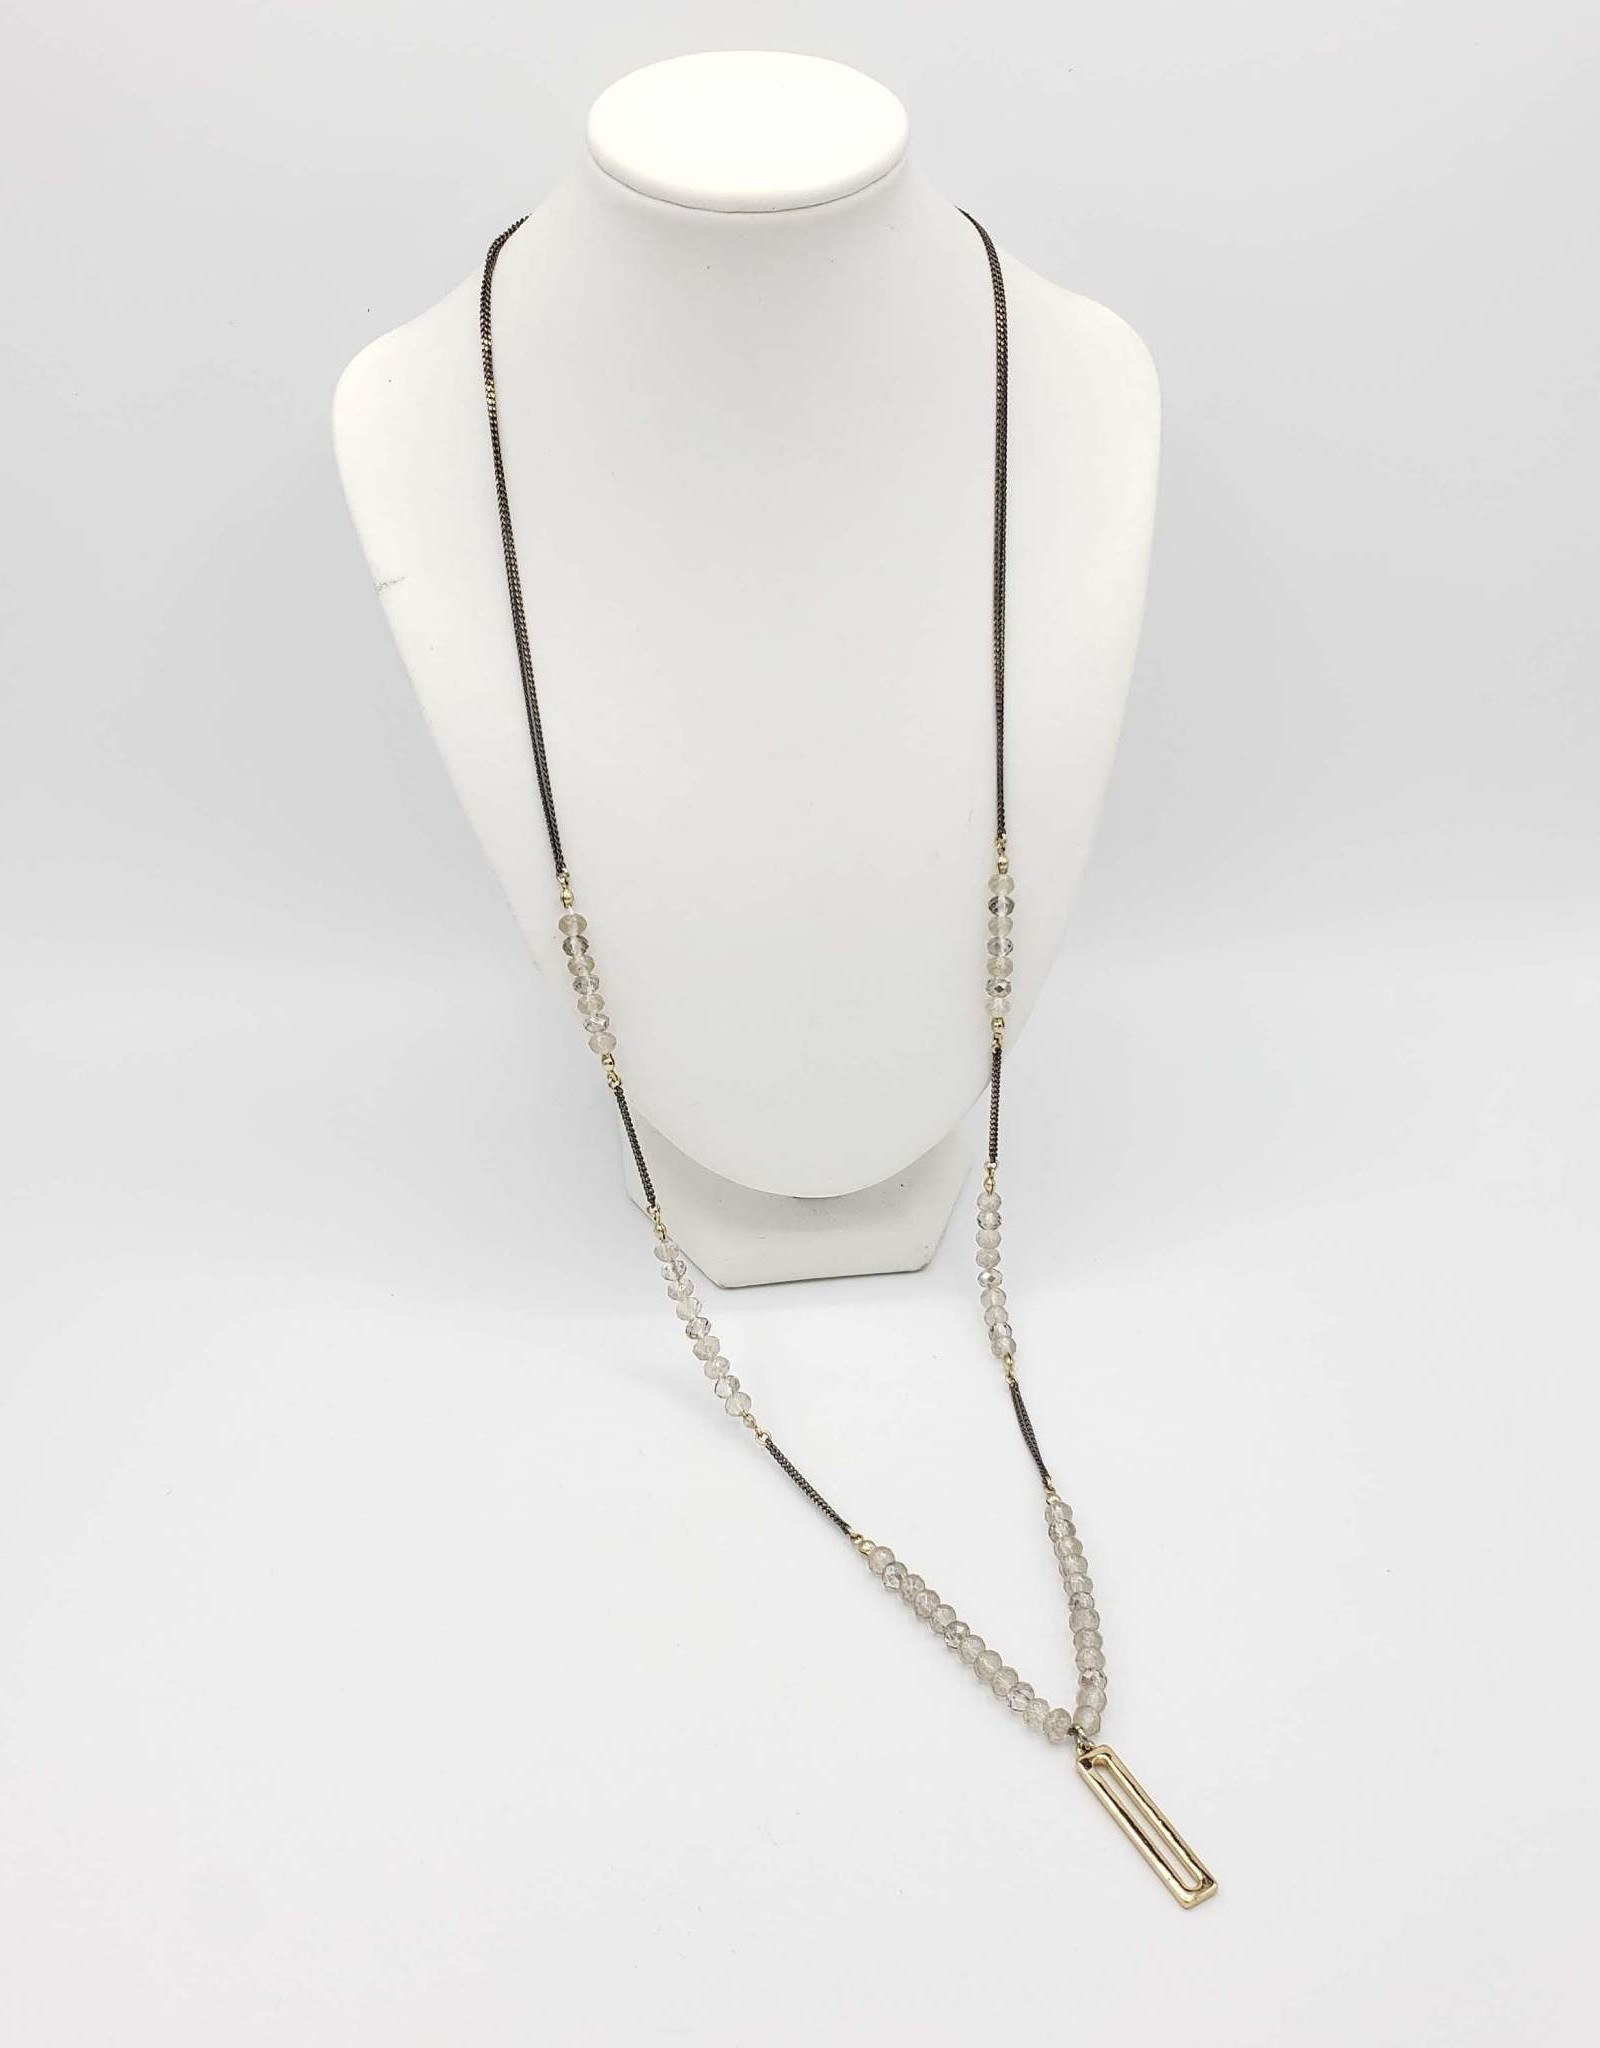 Long Double Chain w/ Faceted Stones Necklace